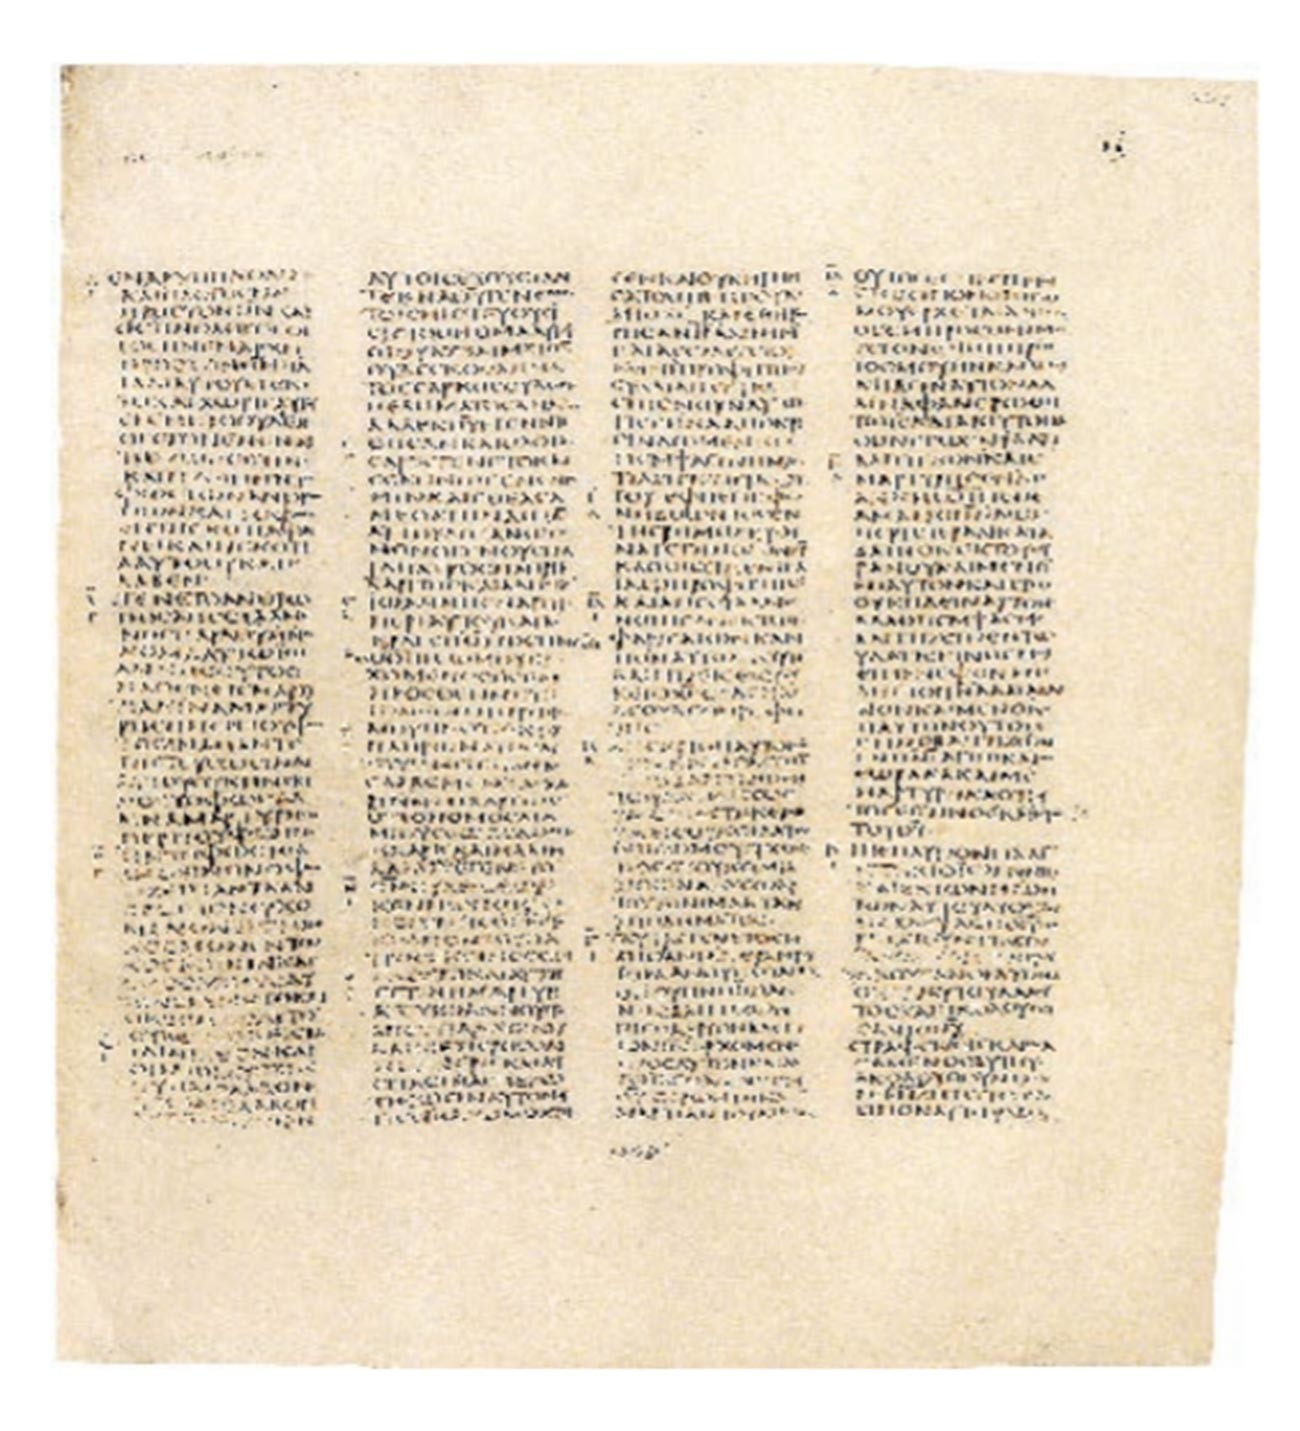 A page from the Codex Sinaiticus